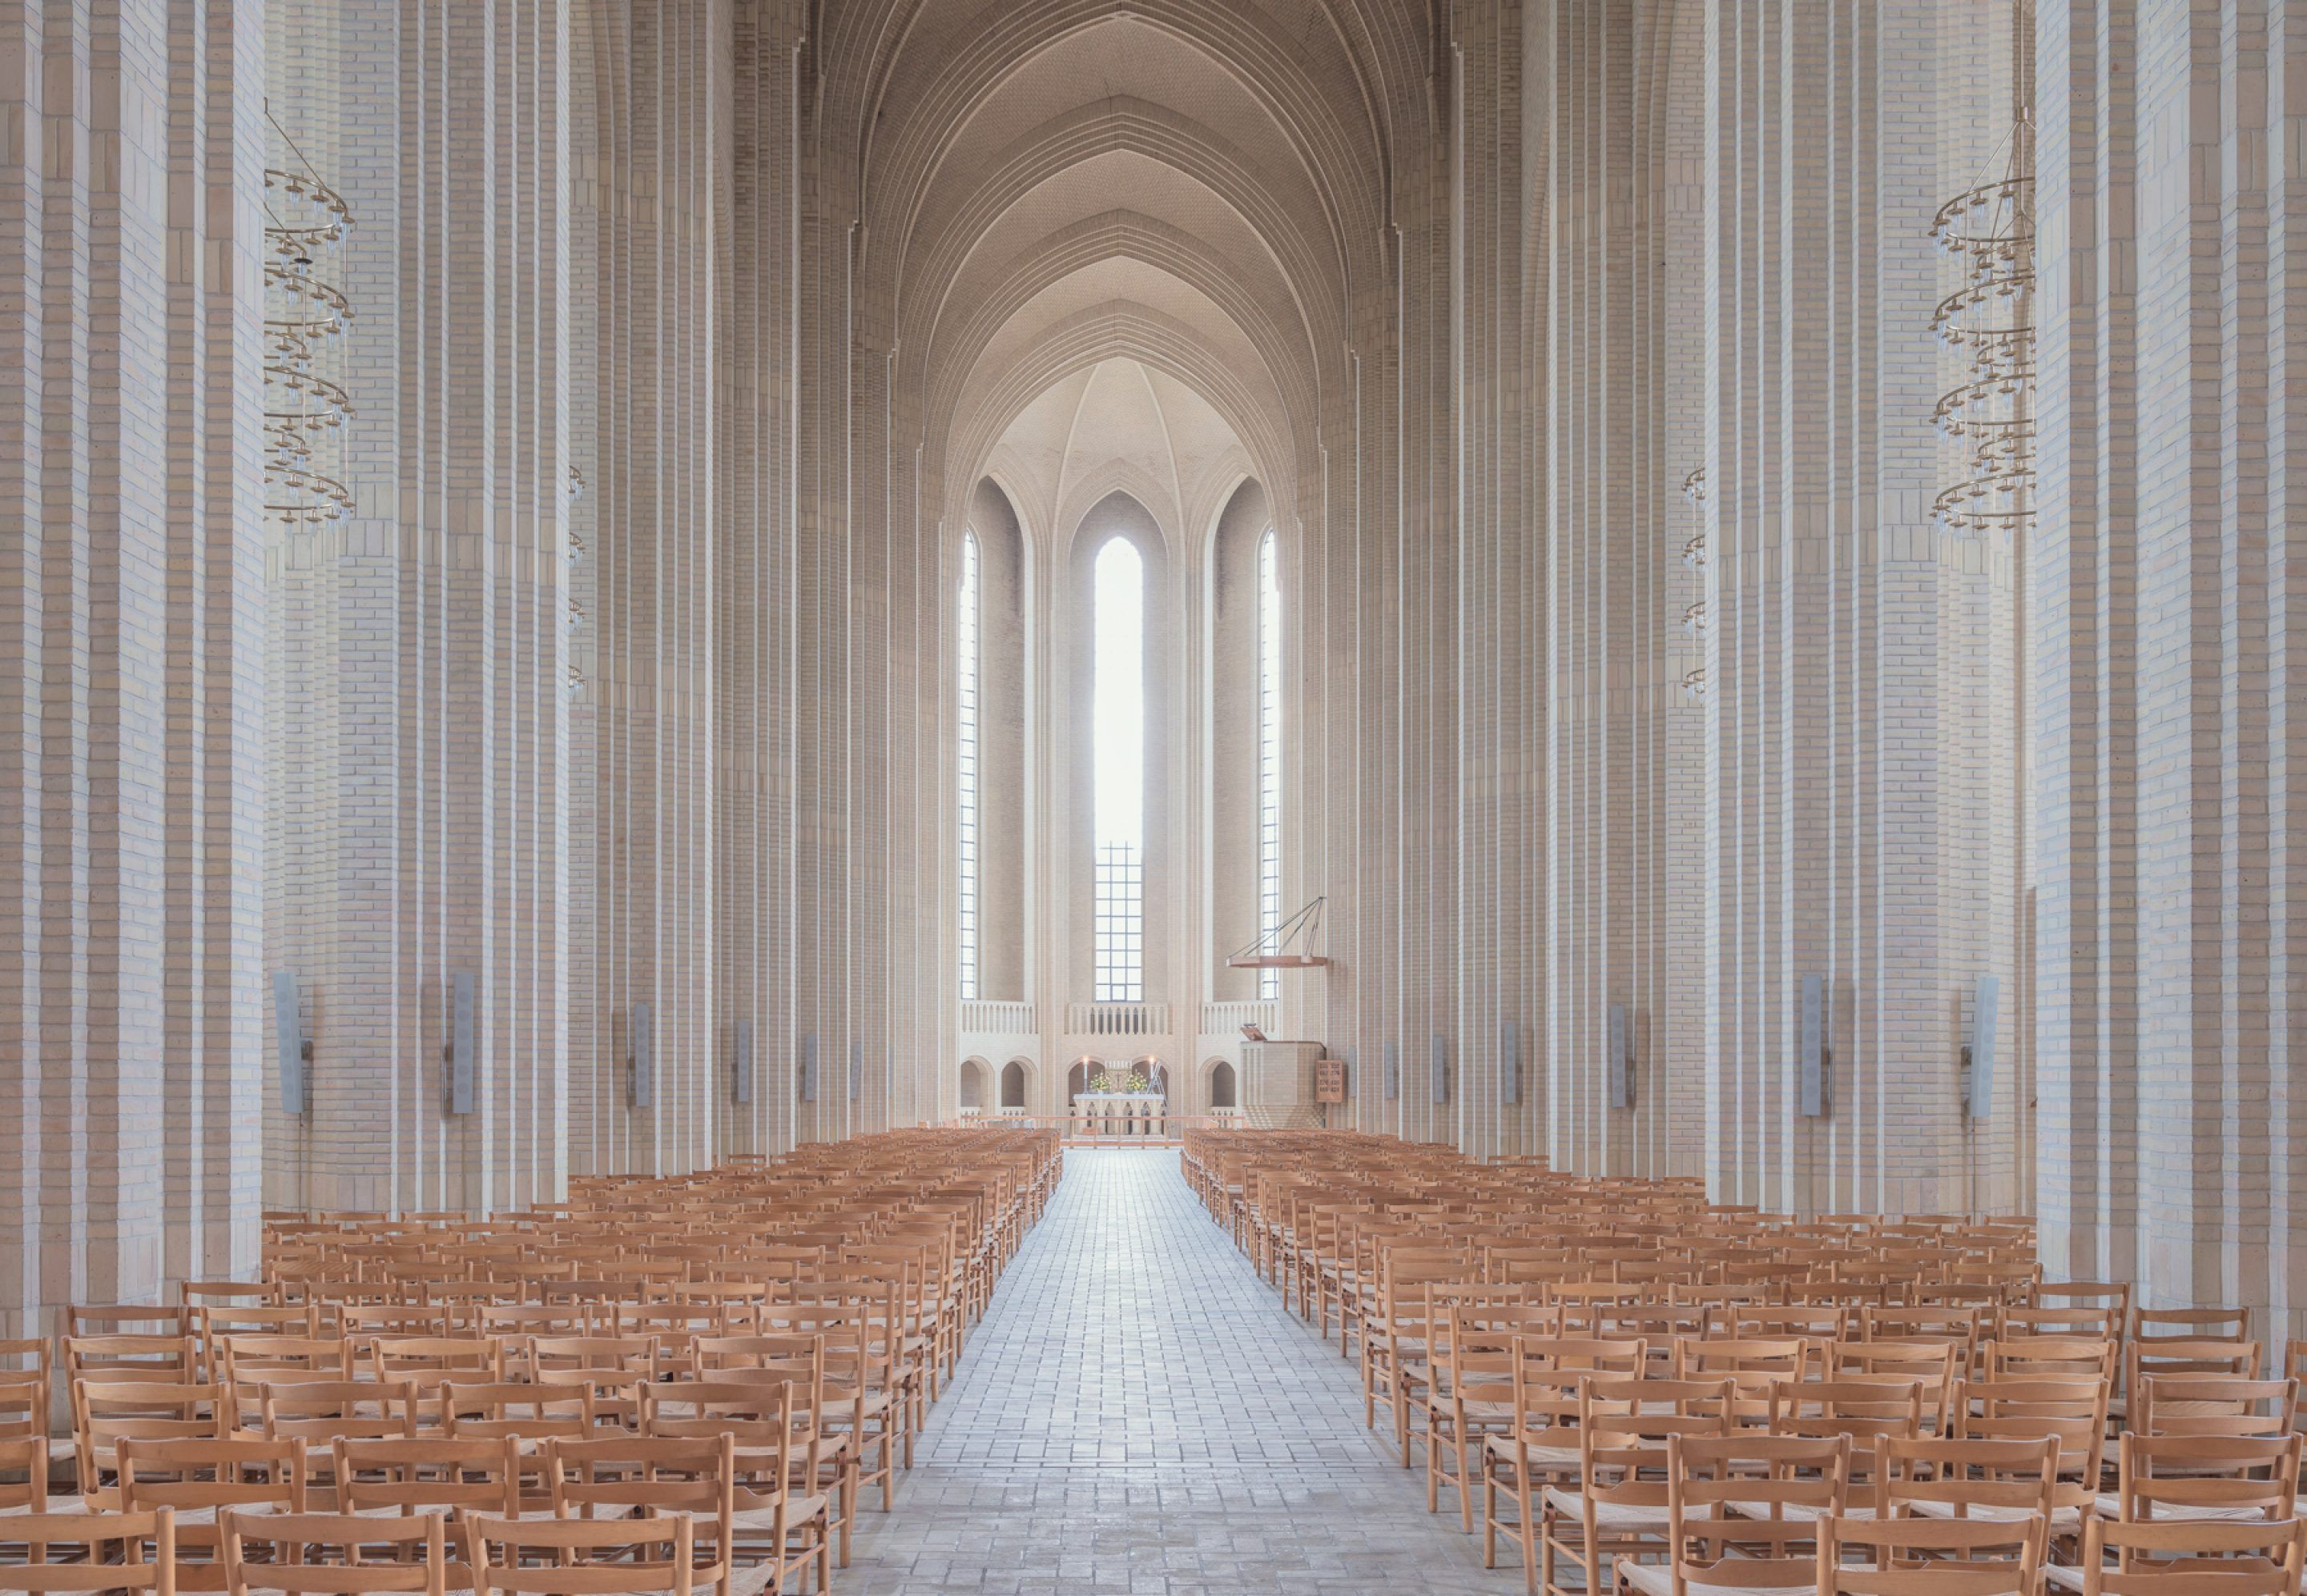 IGNANT-Photography-Ludwig-Favre-Copenhagen-Church-09